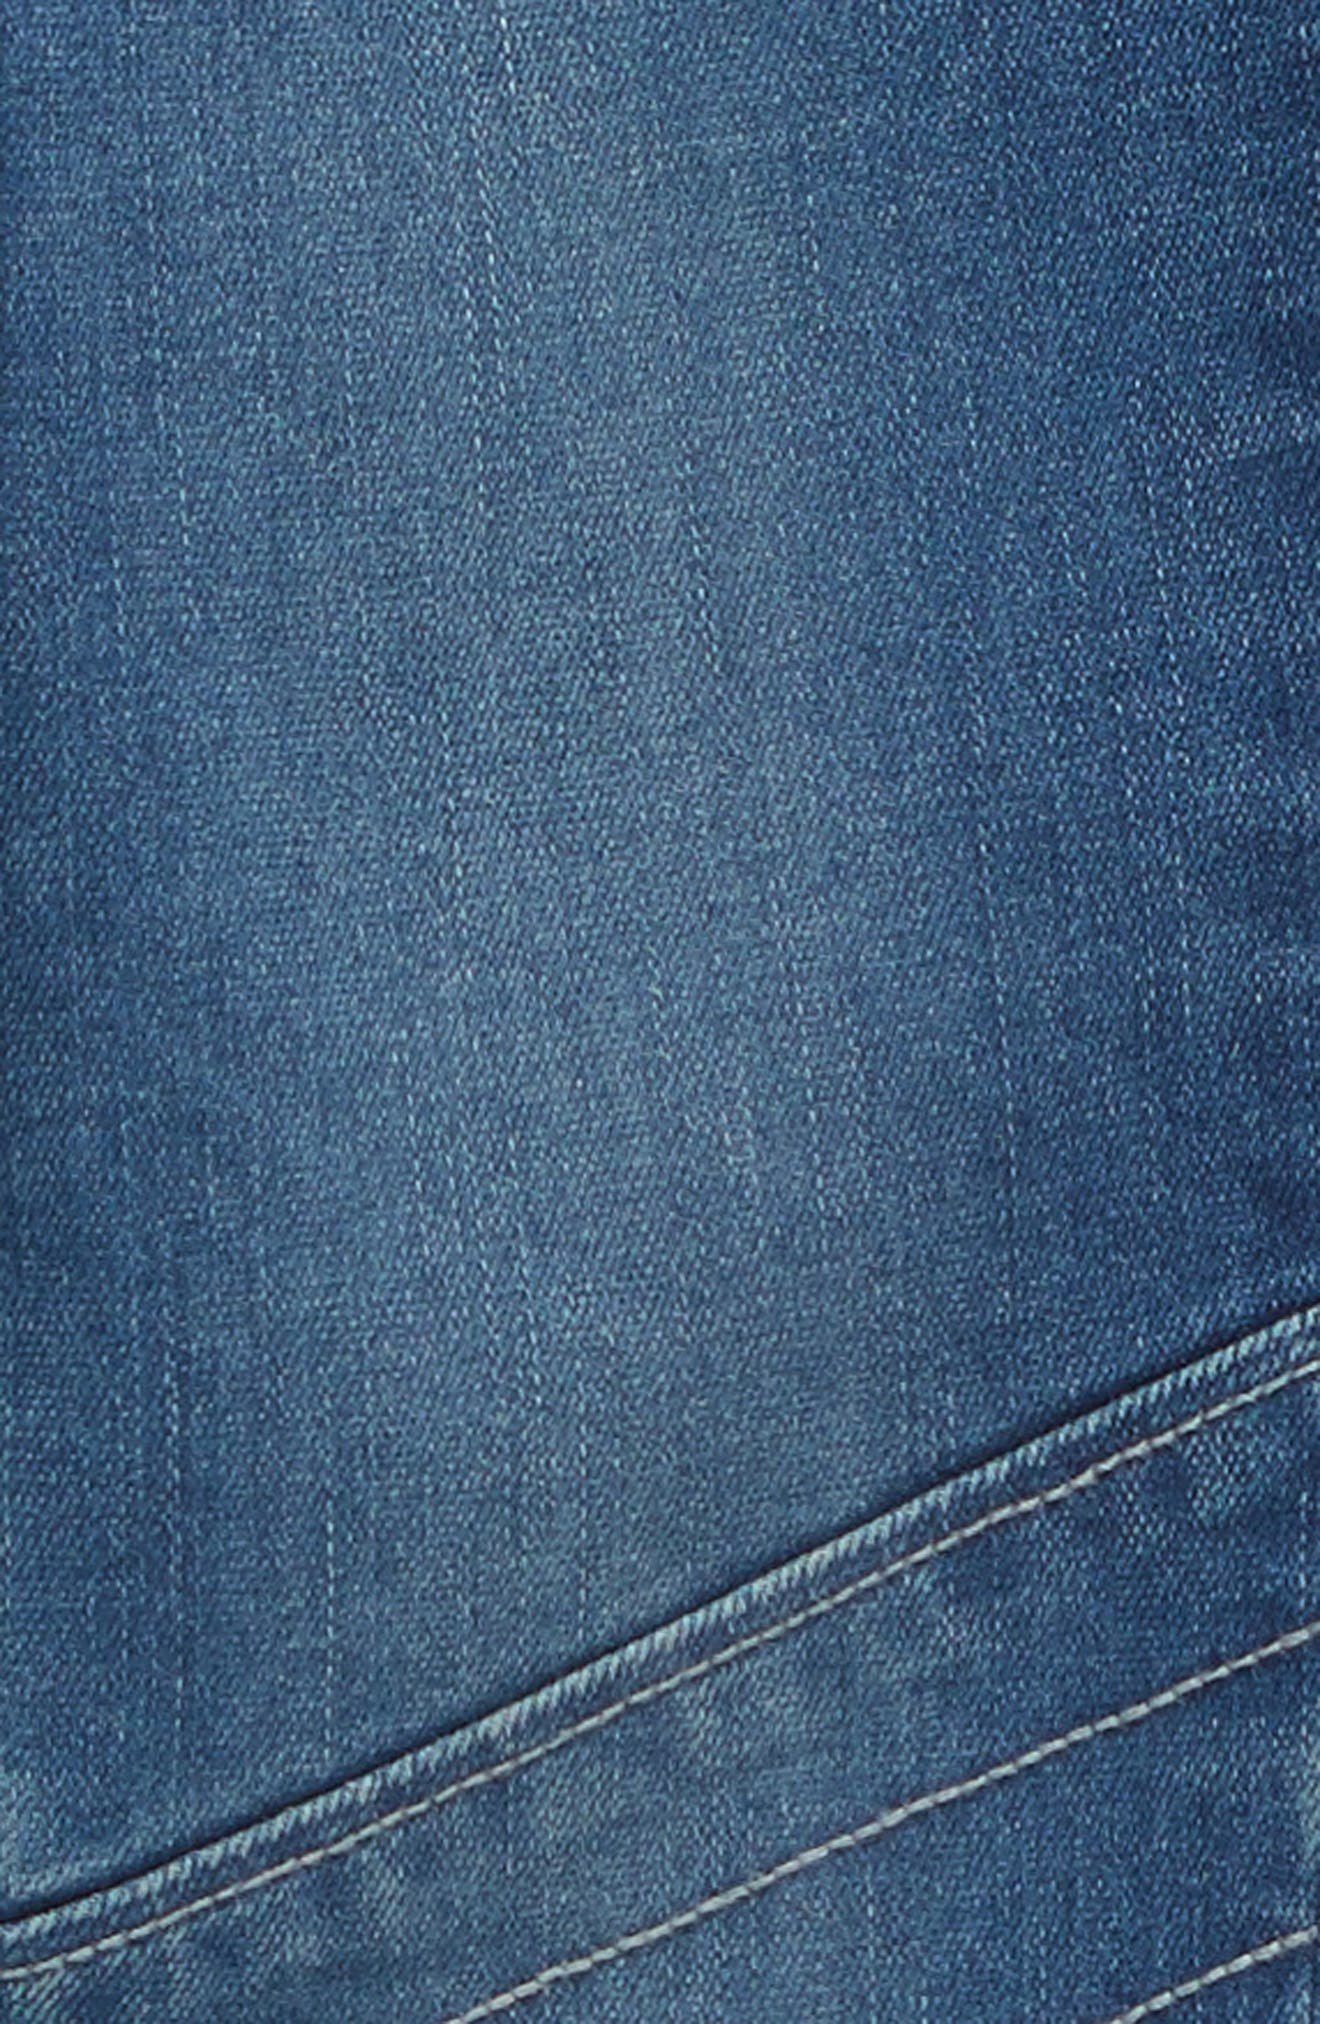 Denim Moto Leggings,                             Alternate thumbnail 3, color,                             420